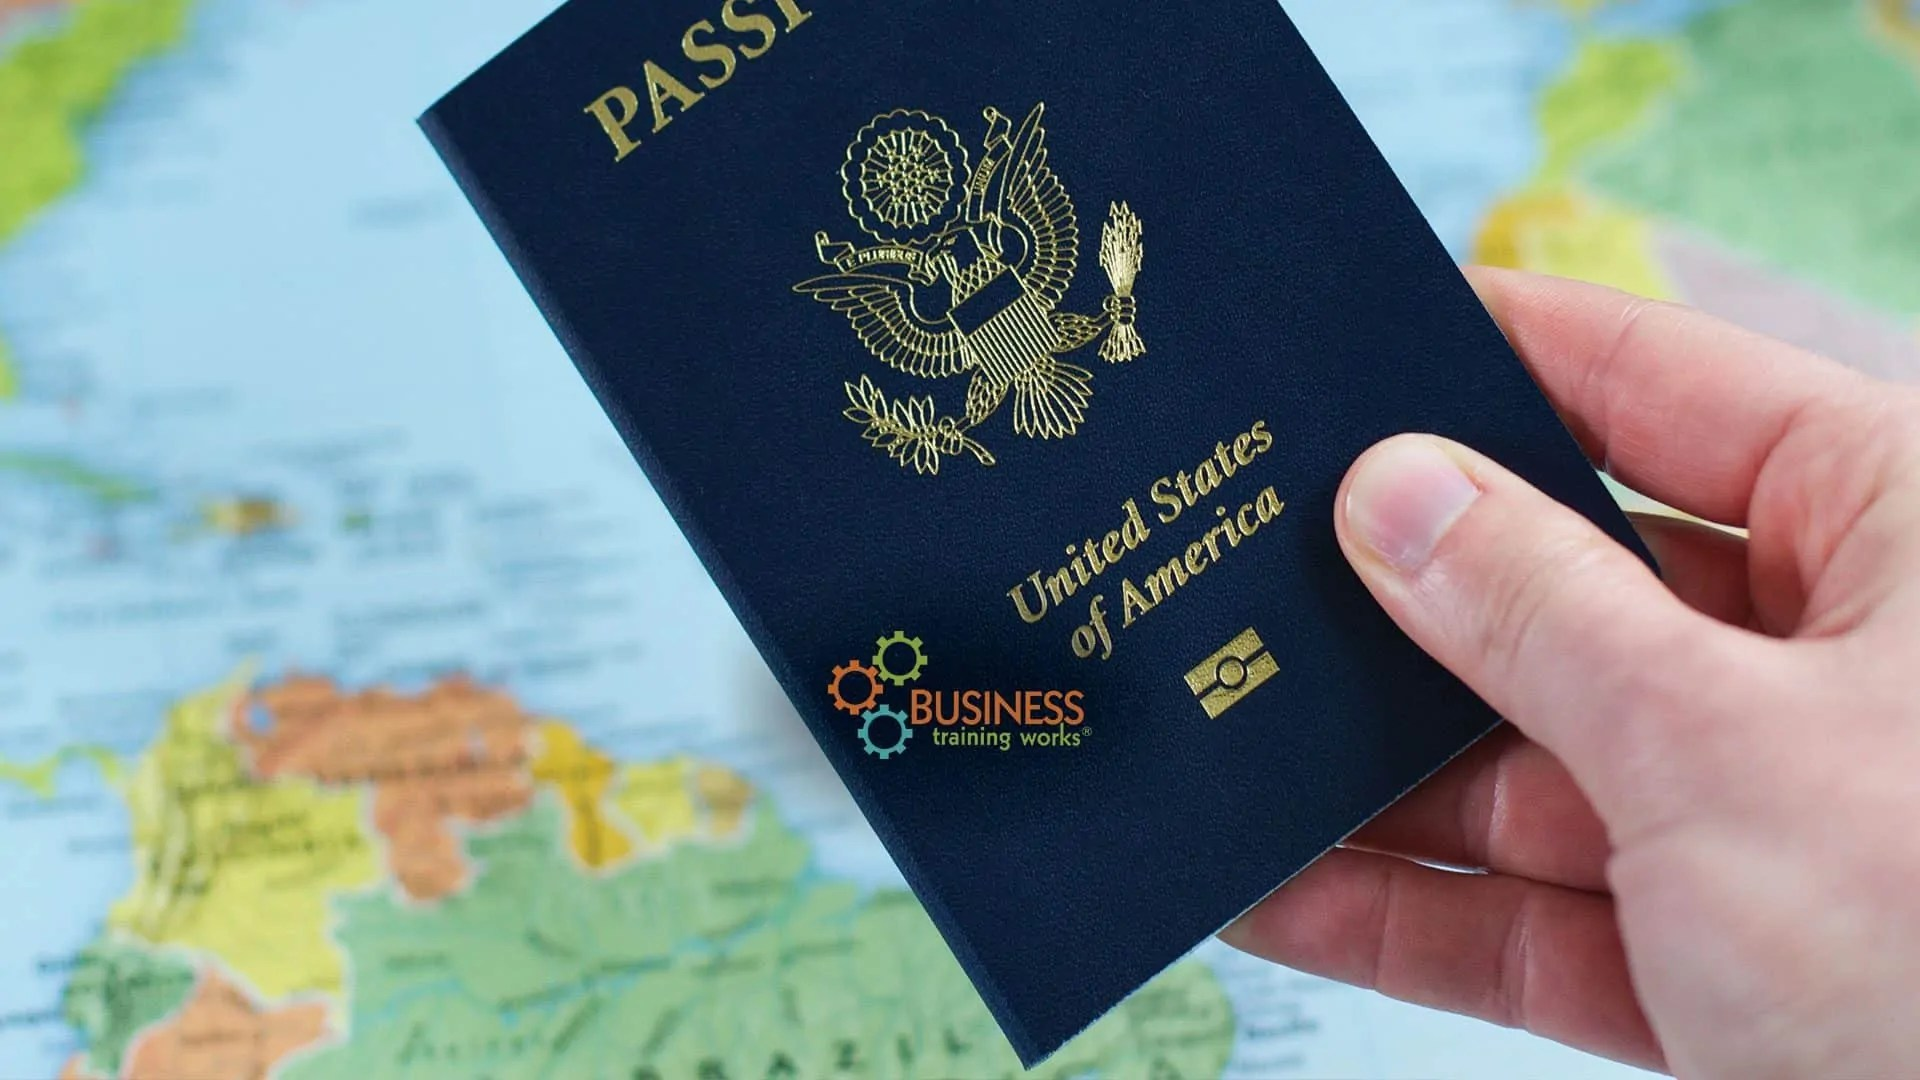 Expatriation Training for Working Outside the United States